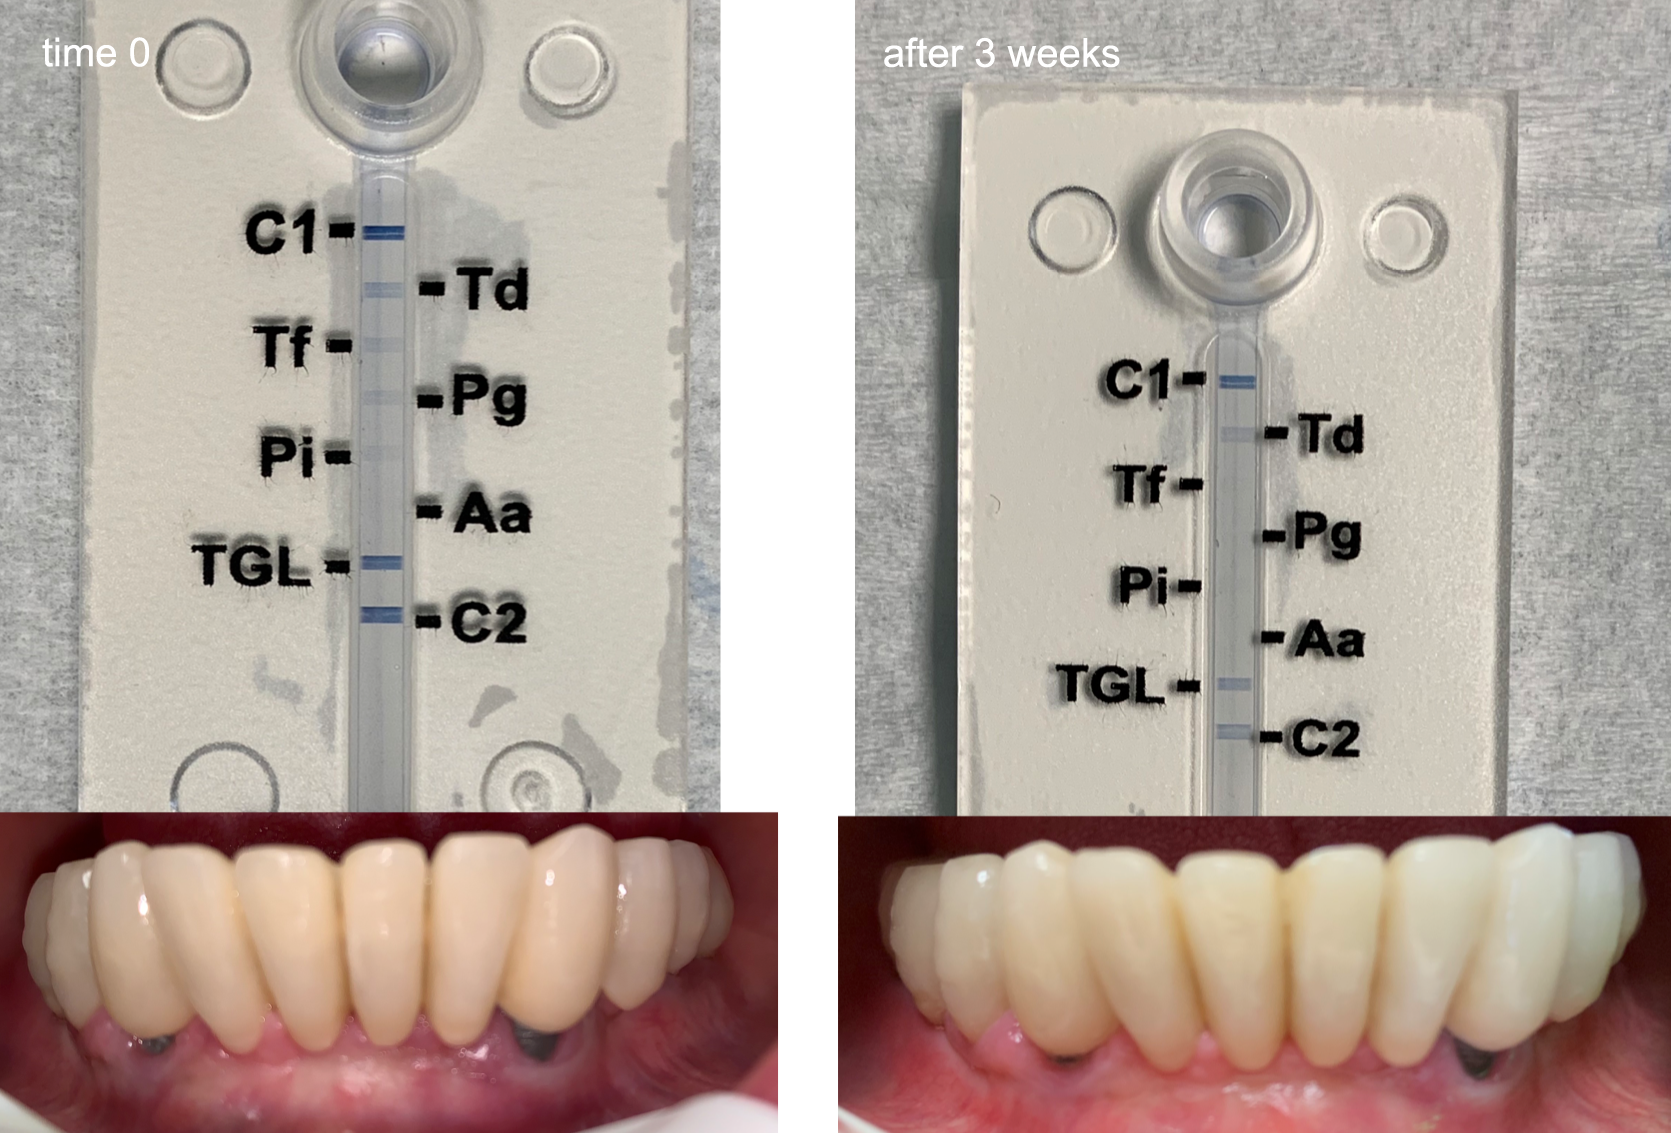 PerioPOC test results before treatment and after treatment. Tests performed by Dr. Gianluca Di Chiaro, a clinical and scientific consultant working for Zinkh NV, a Parx Plastics partner. (click image to zoom)